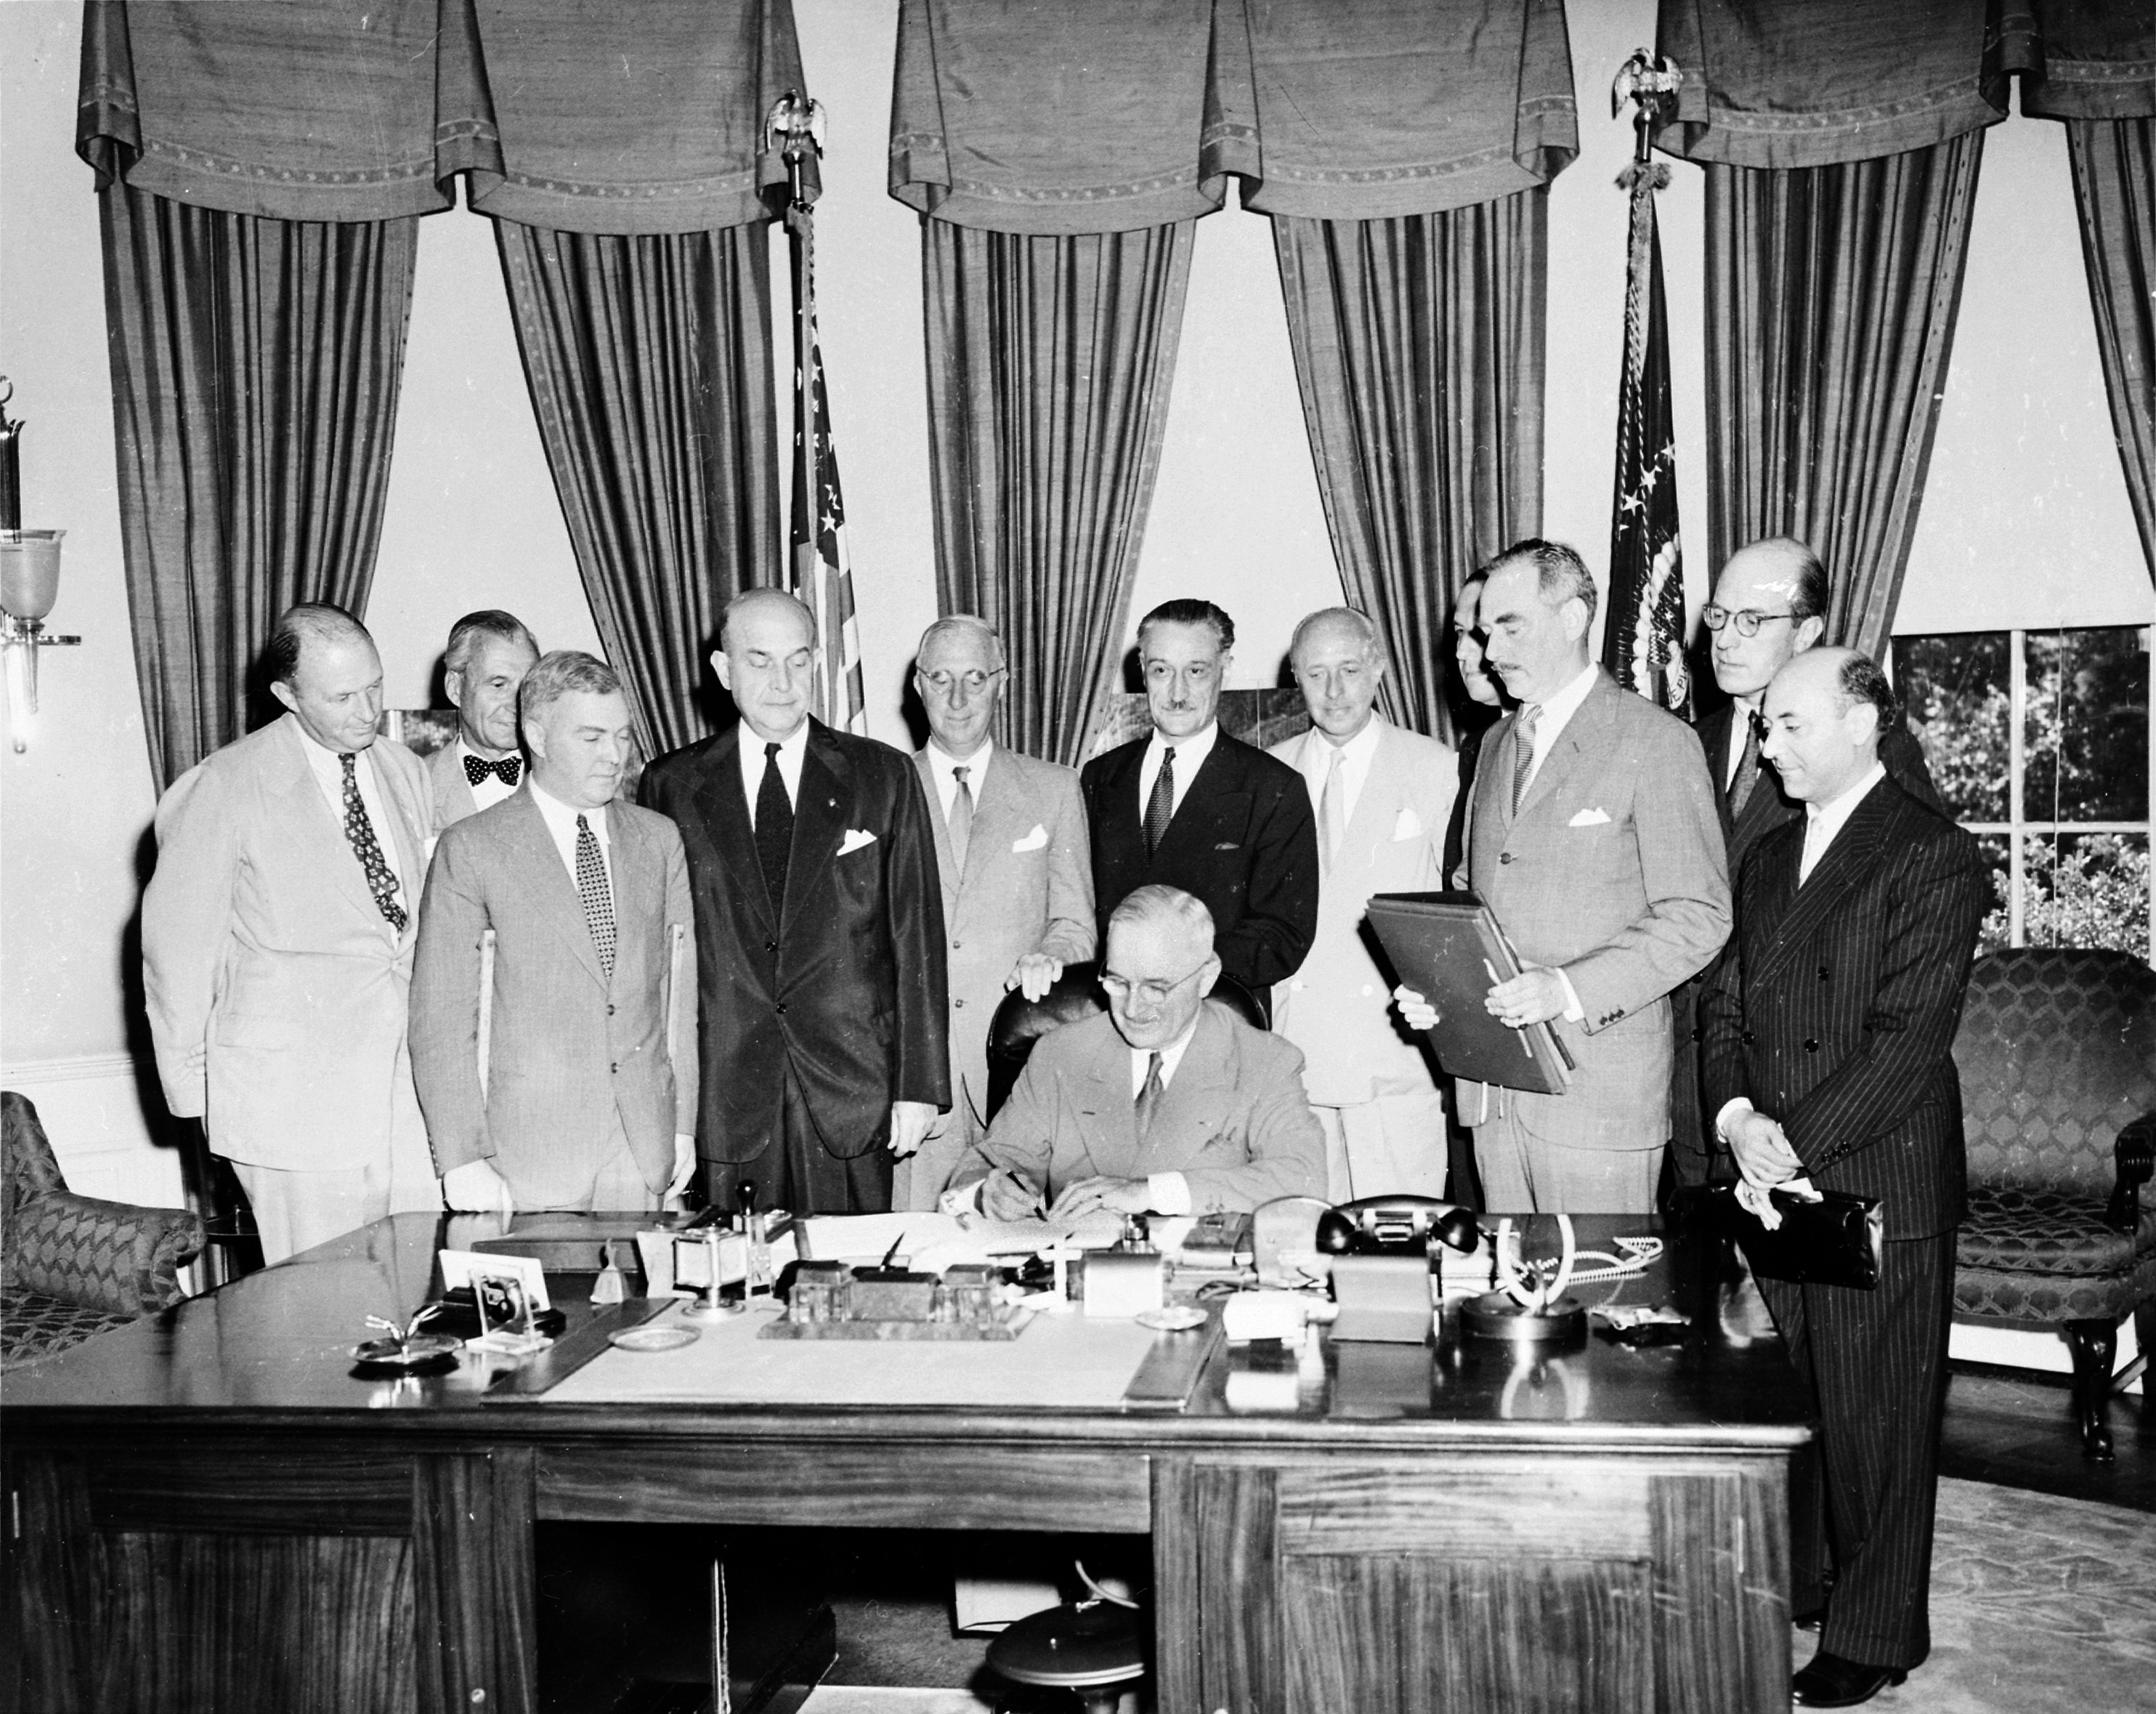 Truman signing the North Atlantic treaty